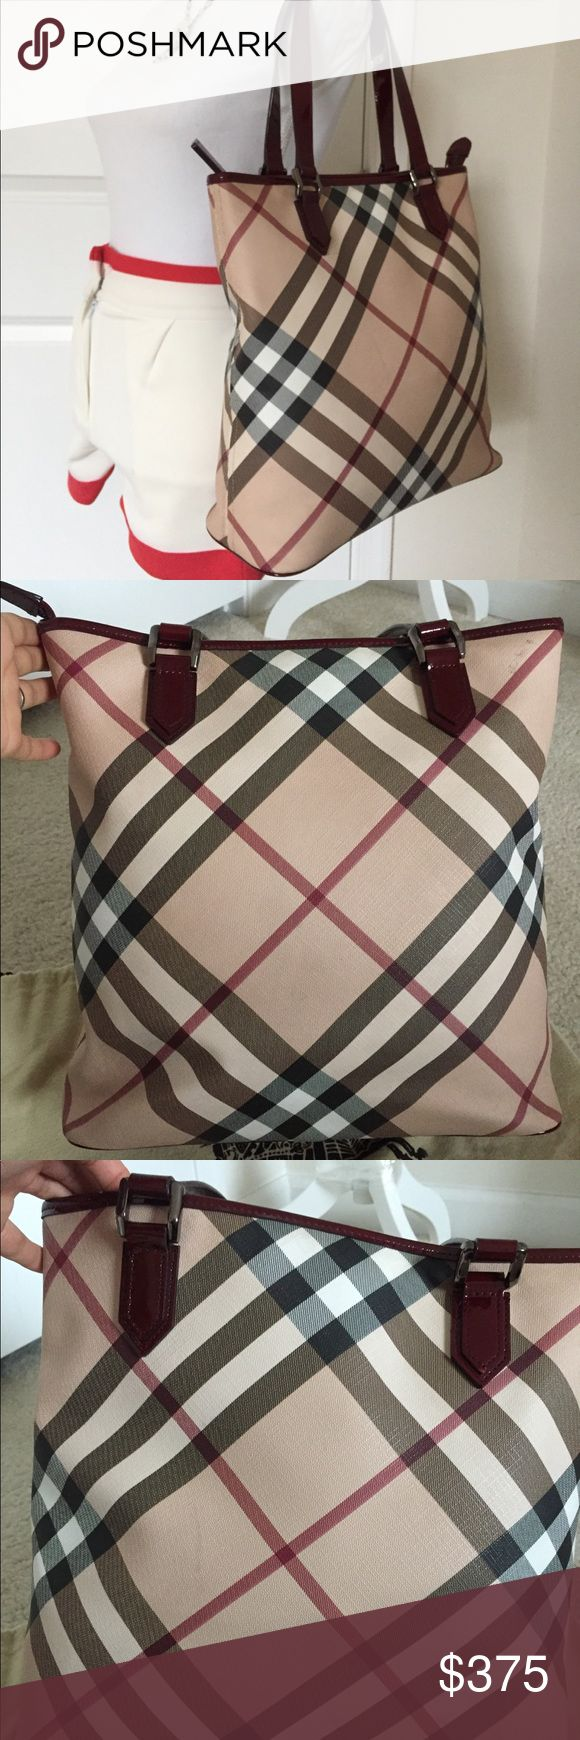 Sale EUC Burberry supernova check classic large 100%Authentic guaranteed Burberry supernova check large classic tote handbag bag in great used condition ! barely used, please reference to all pics , one smudged on exterior top corner as shown pictured, and one unnoticeable on exterior as shown pictured!  Otherwise excellent condition! Very clean though !   Dimensions approximately 14-16' L /13' H /5' W handles drop 9'  Come with original dust bag Burberry Bags Totes